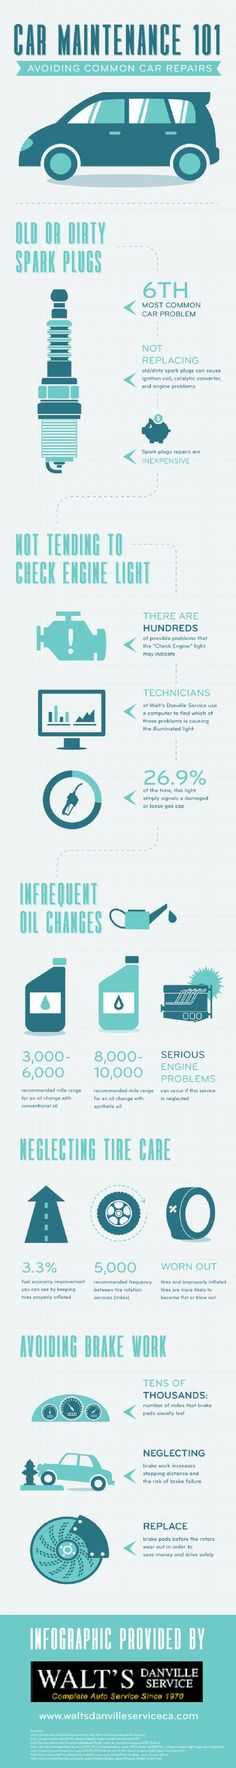 Cars with conventional oil should get oil changes every 3,000-6,000 miles. Those with synthetic oil need oil changes every 8,000-10,000 miles. Regular